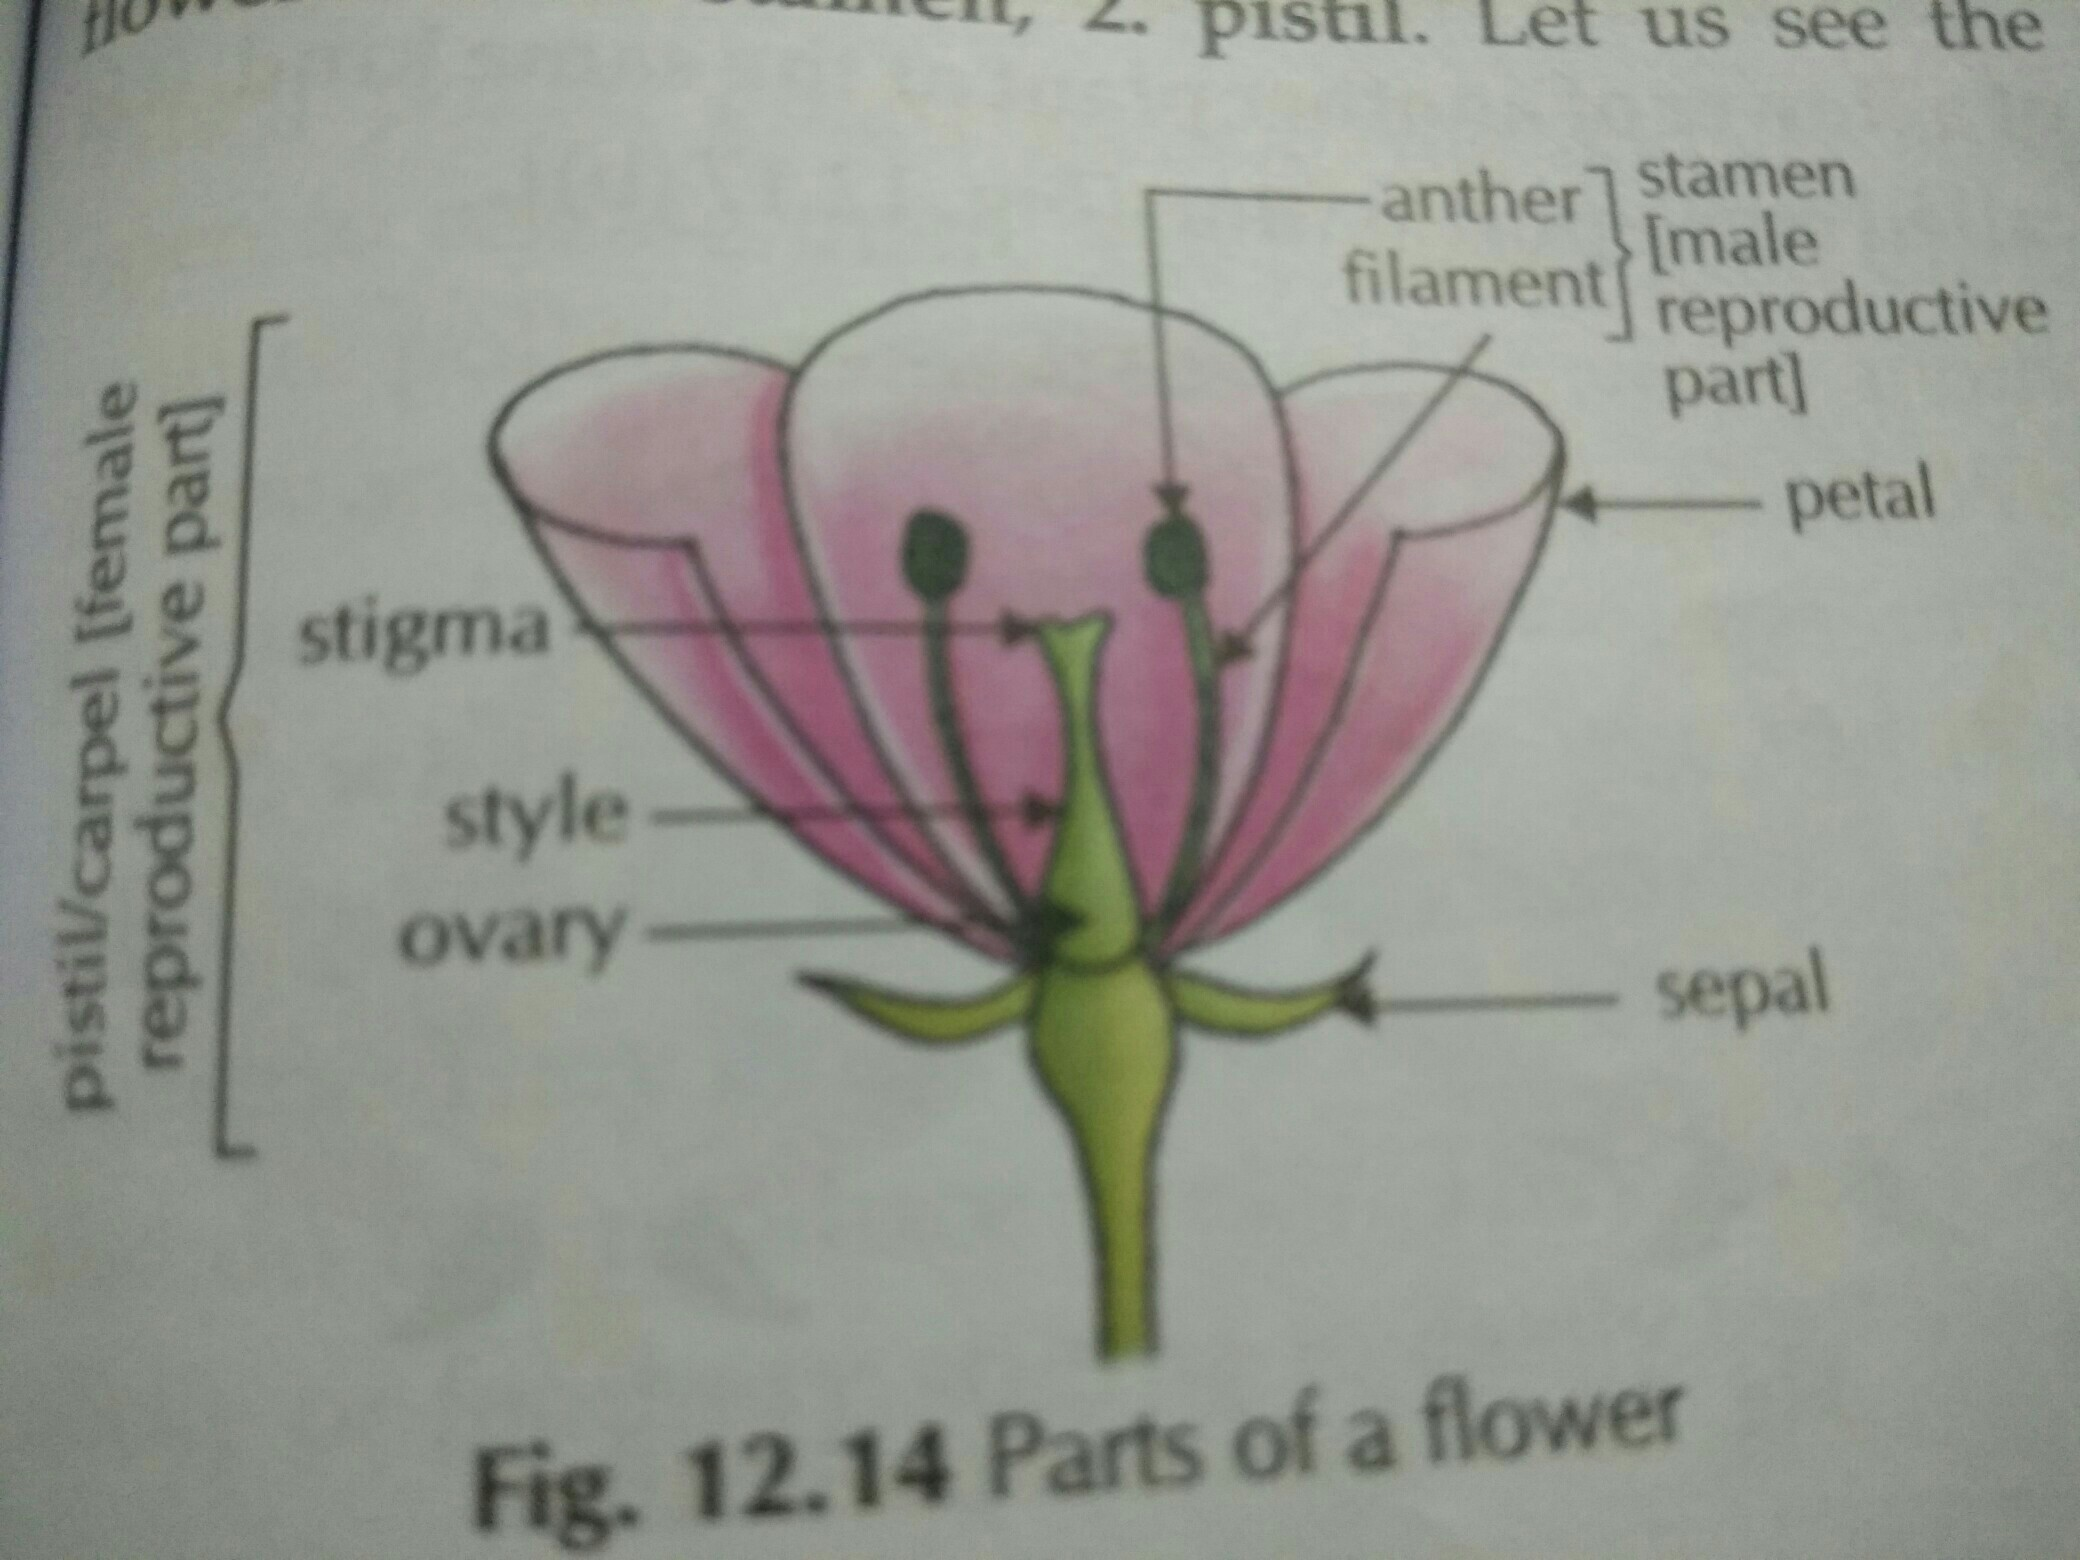 Female Reproductive Part Of Flower Is Called